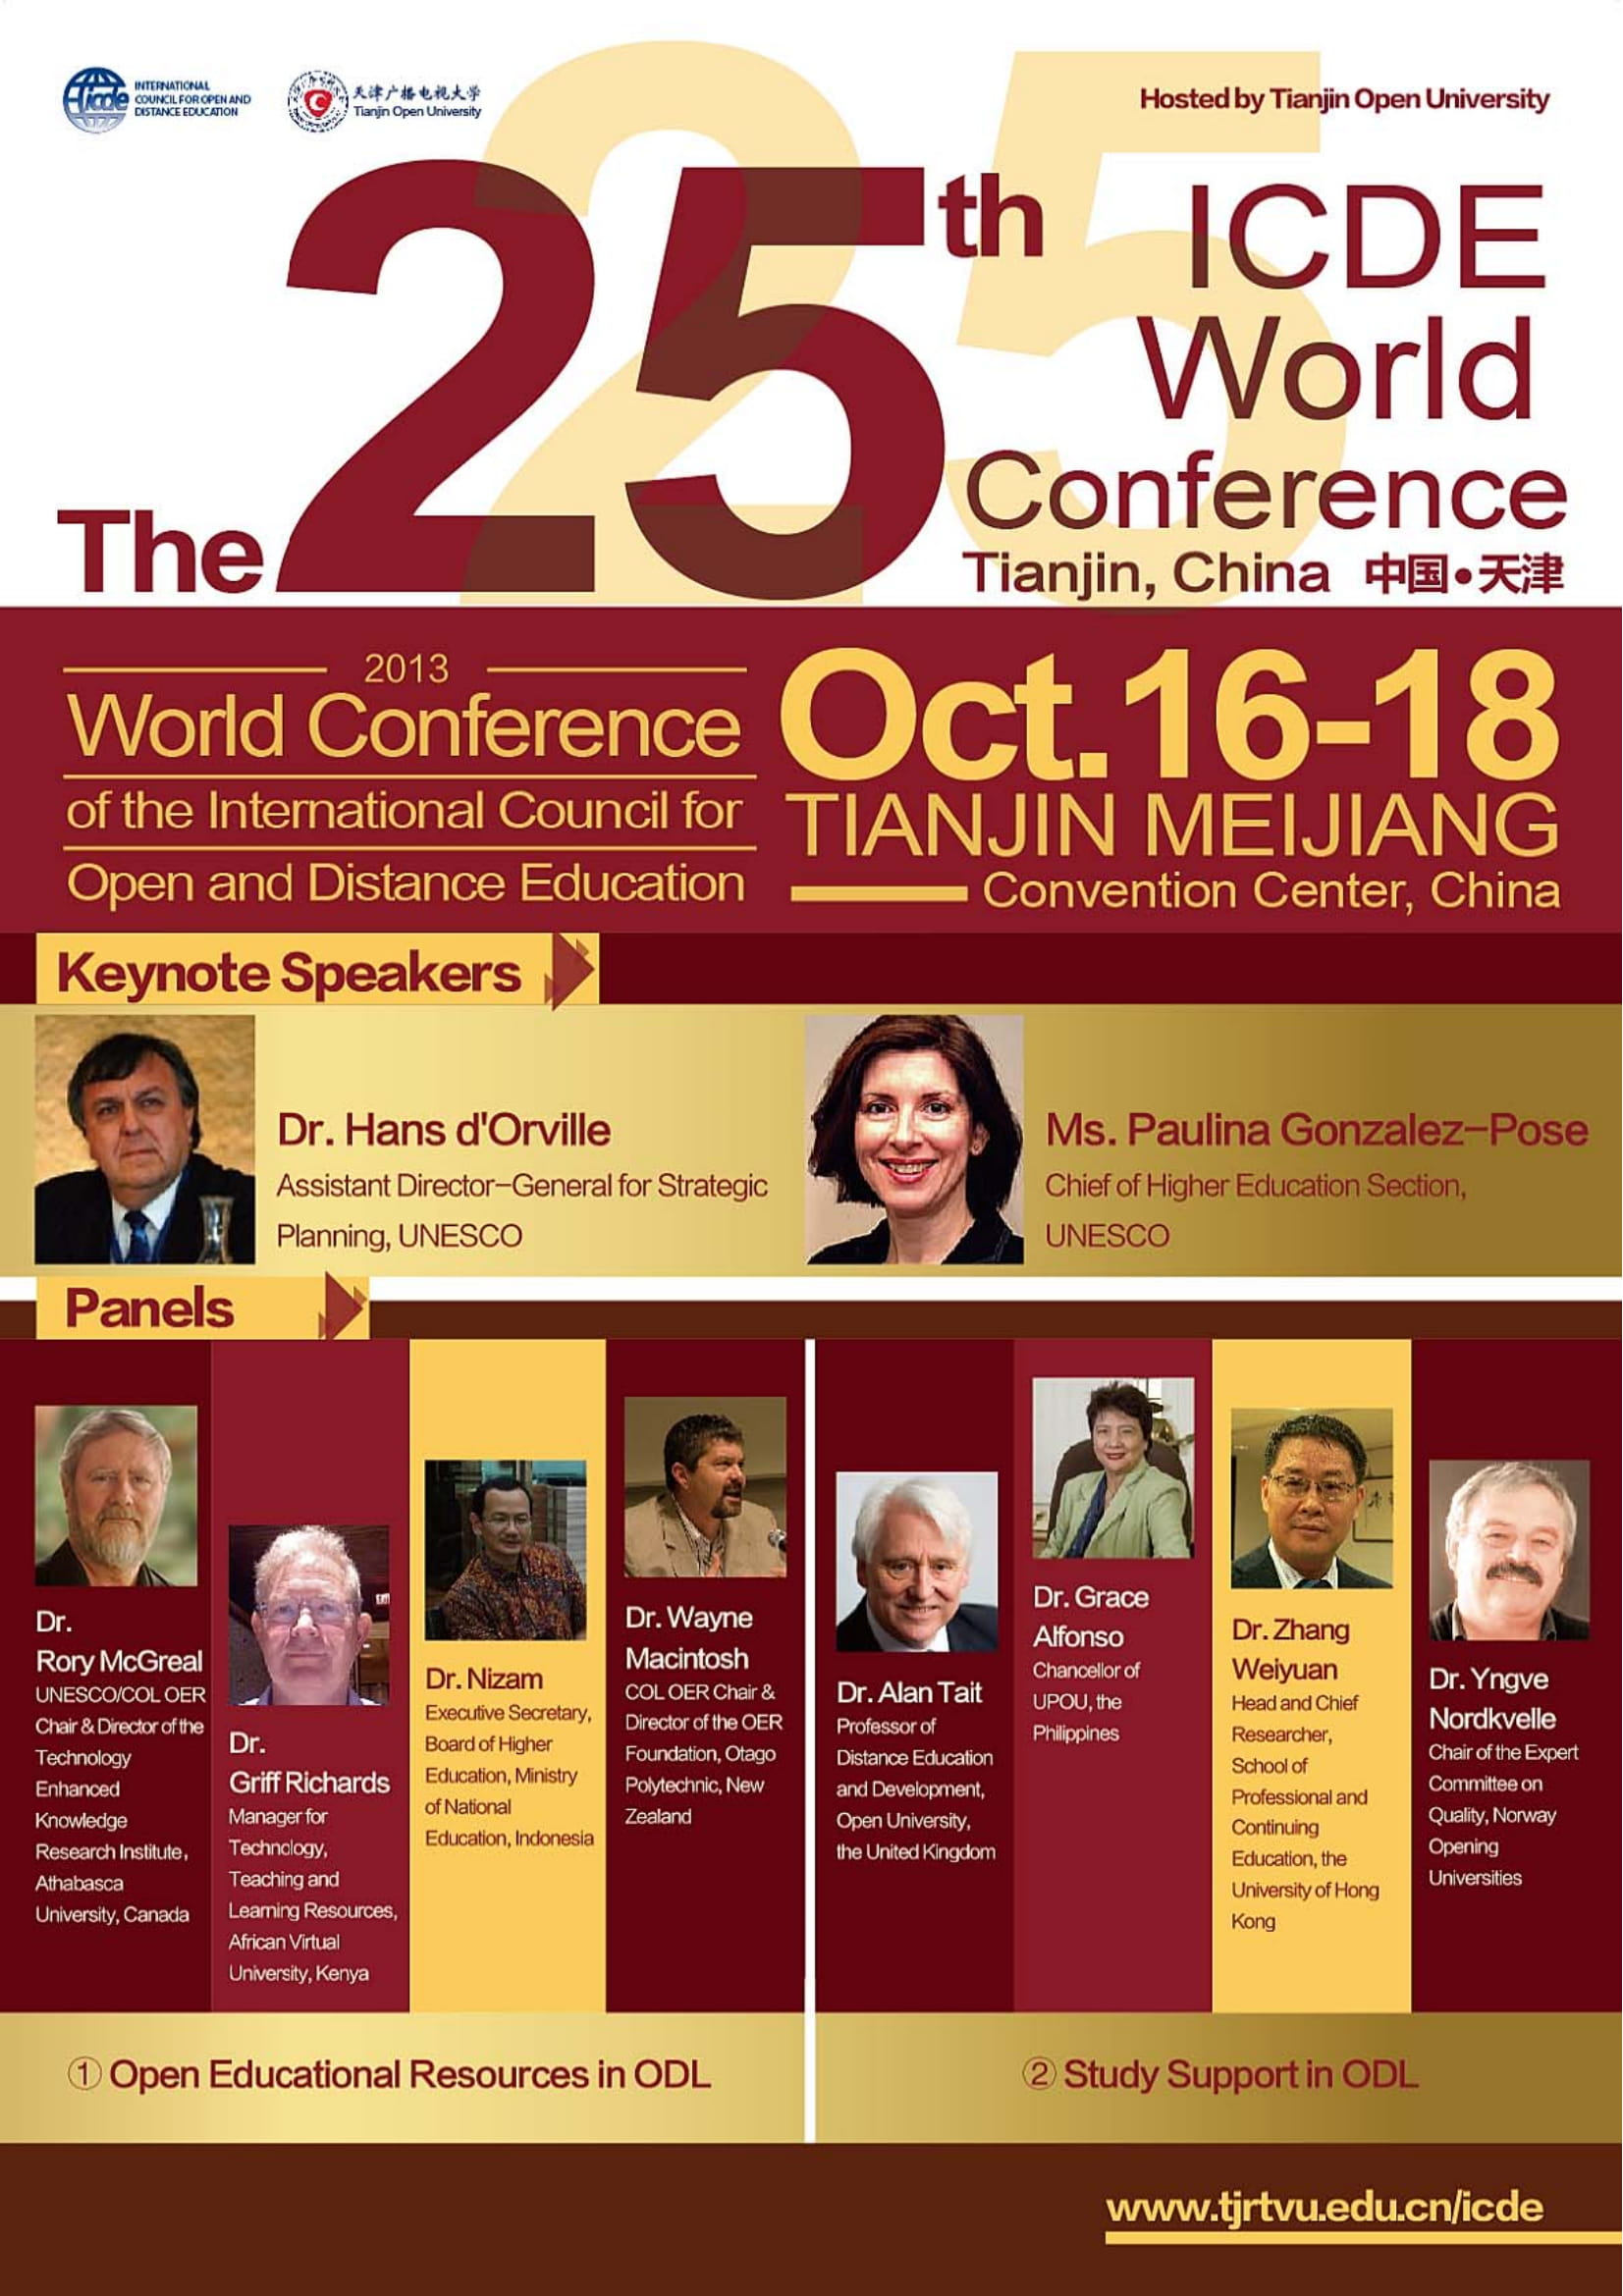 ICDE 25th World Conference flyer v.3 20130903-1.jpg